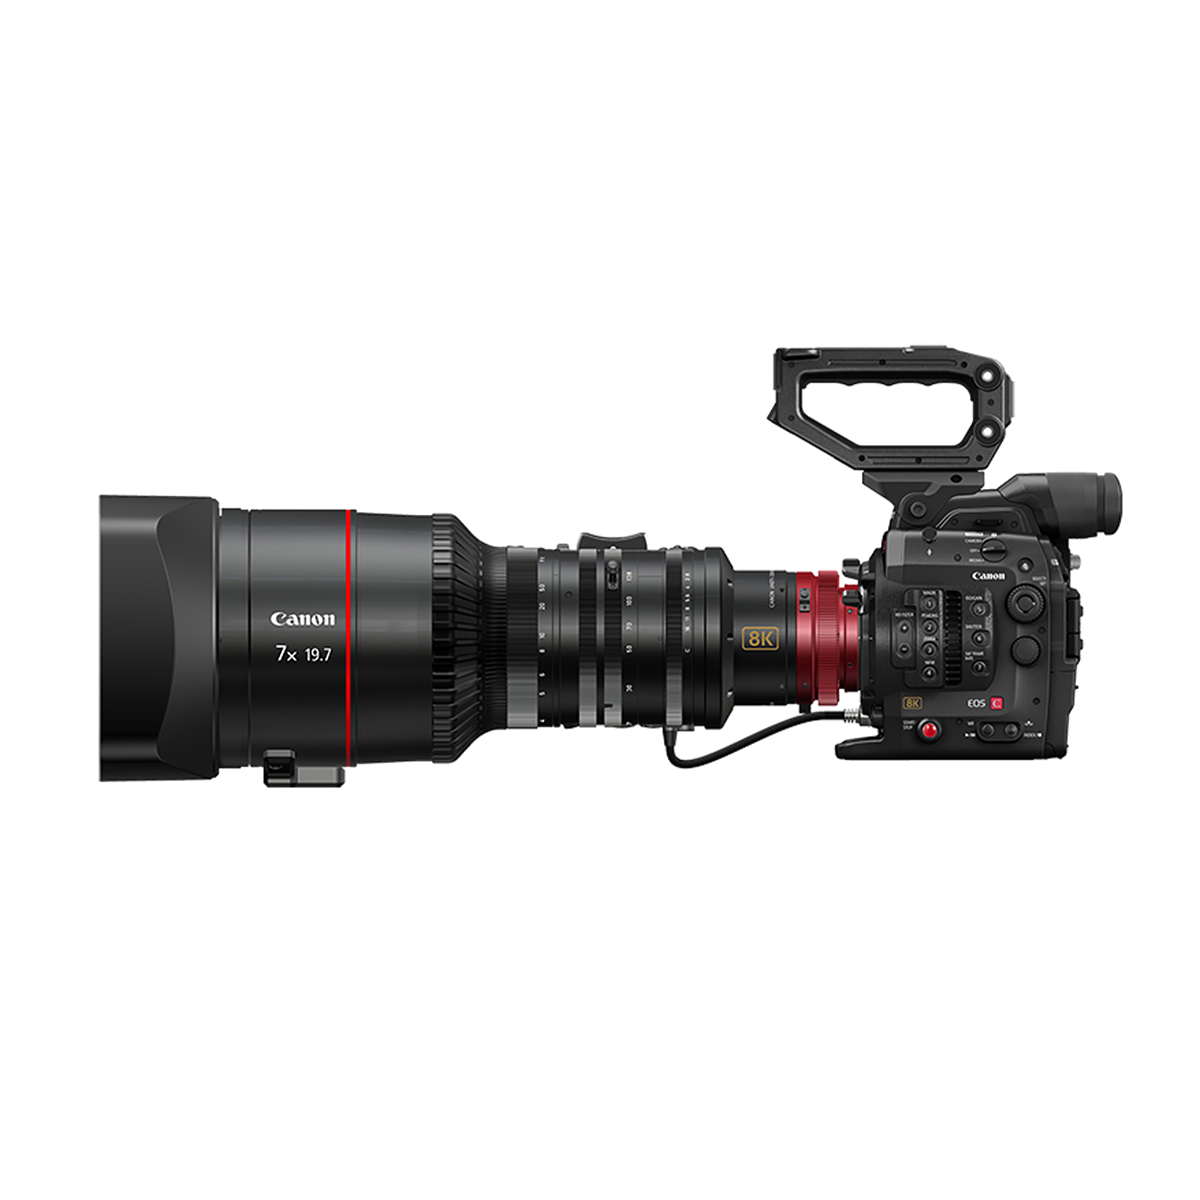 Canon Plans High Res Future With 120mp Dslr And 8k Cinema Eos In Development Digital Photography Review